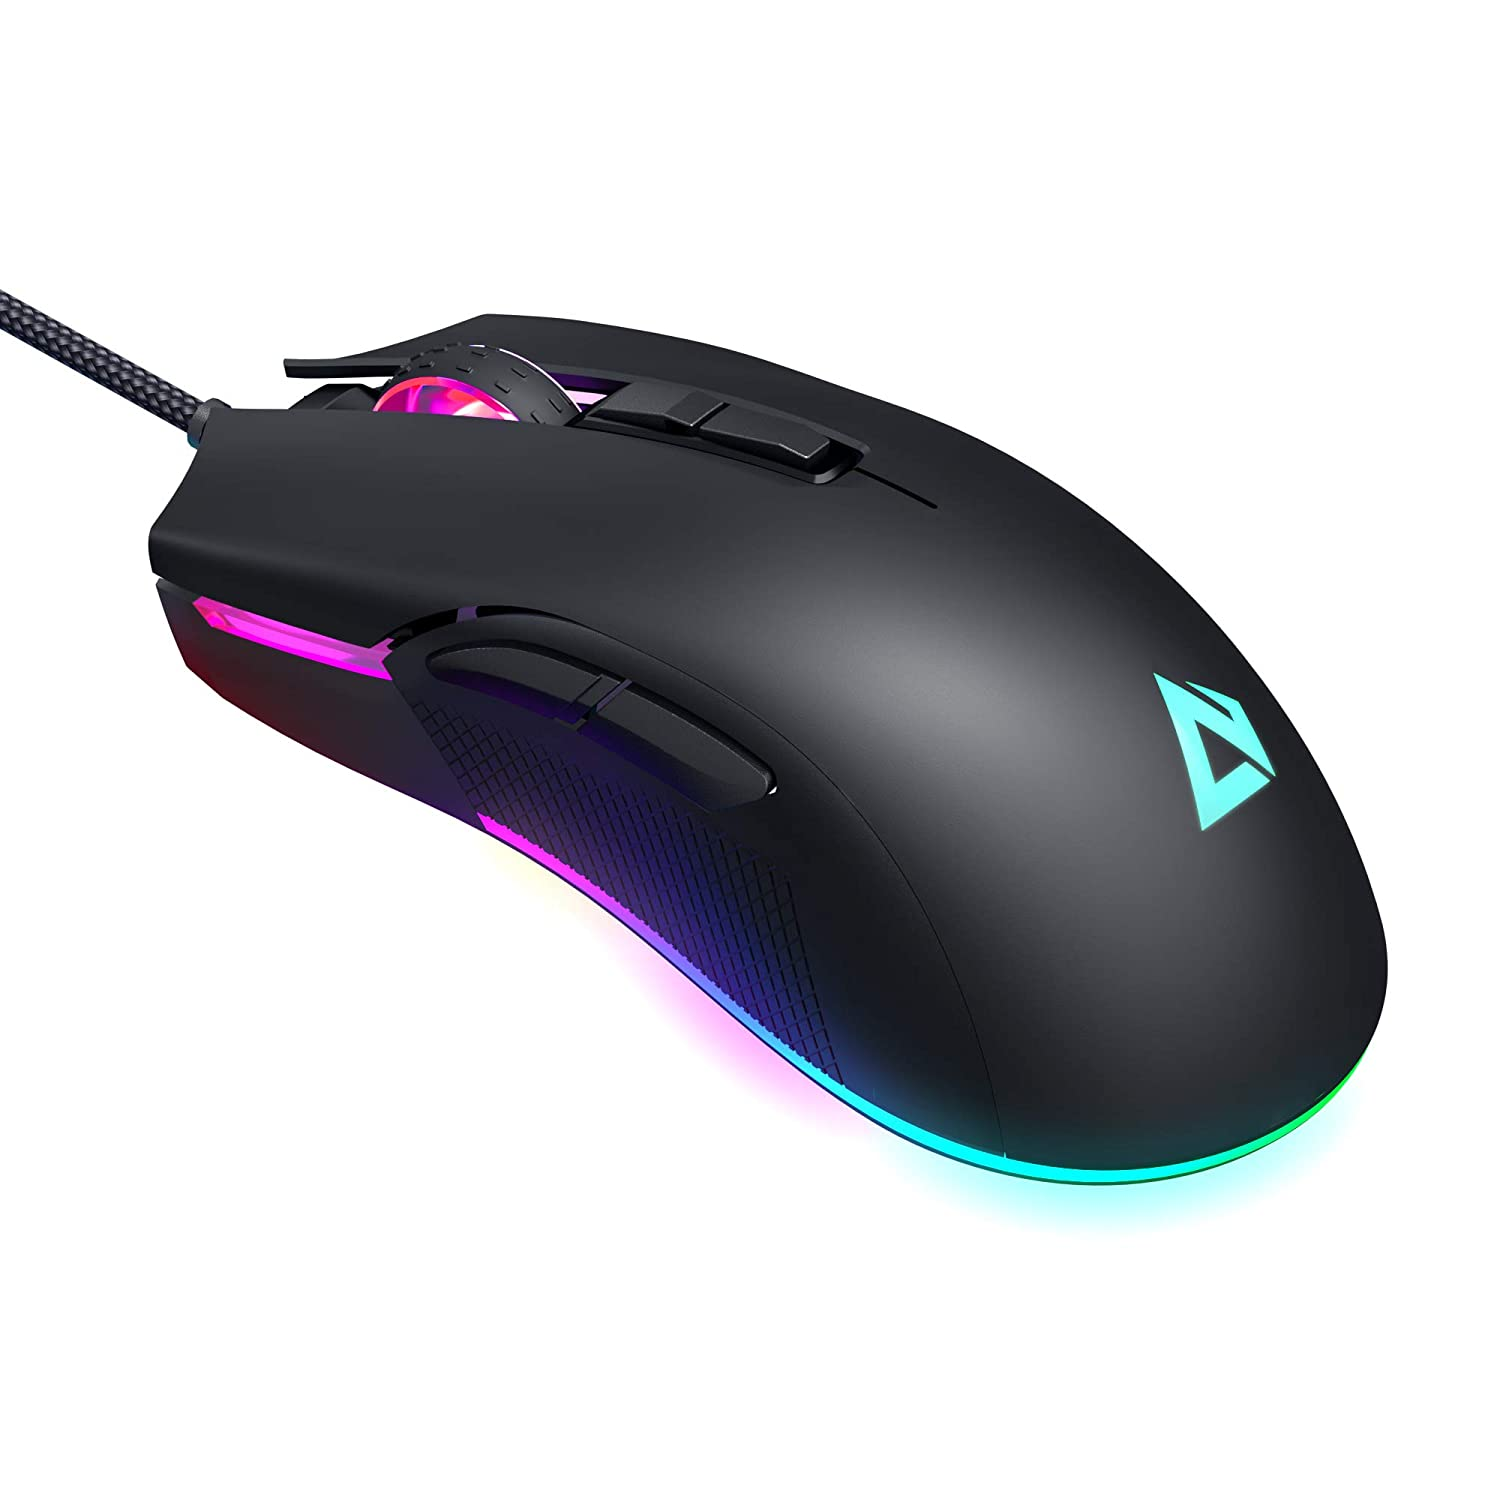 AUKEY Mouse Gaming RGB, Mouse FPS con 5000 DPI Reali